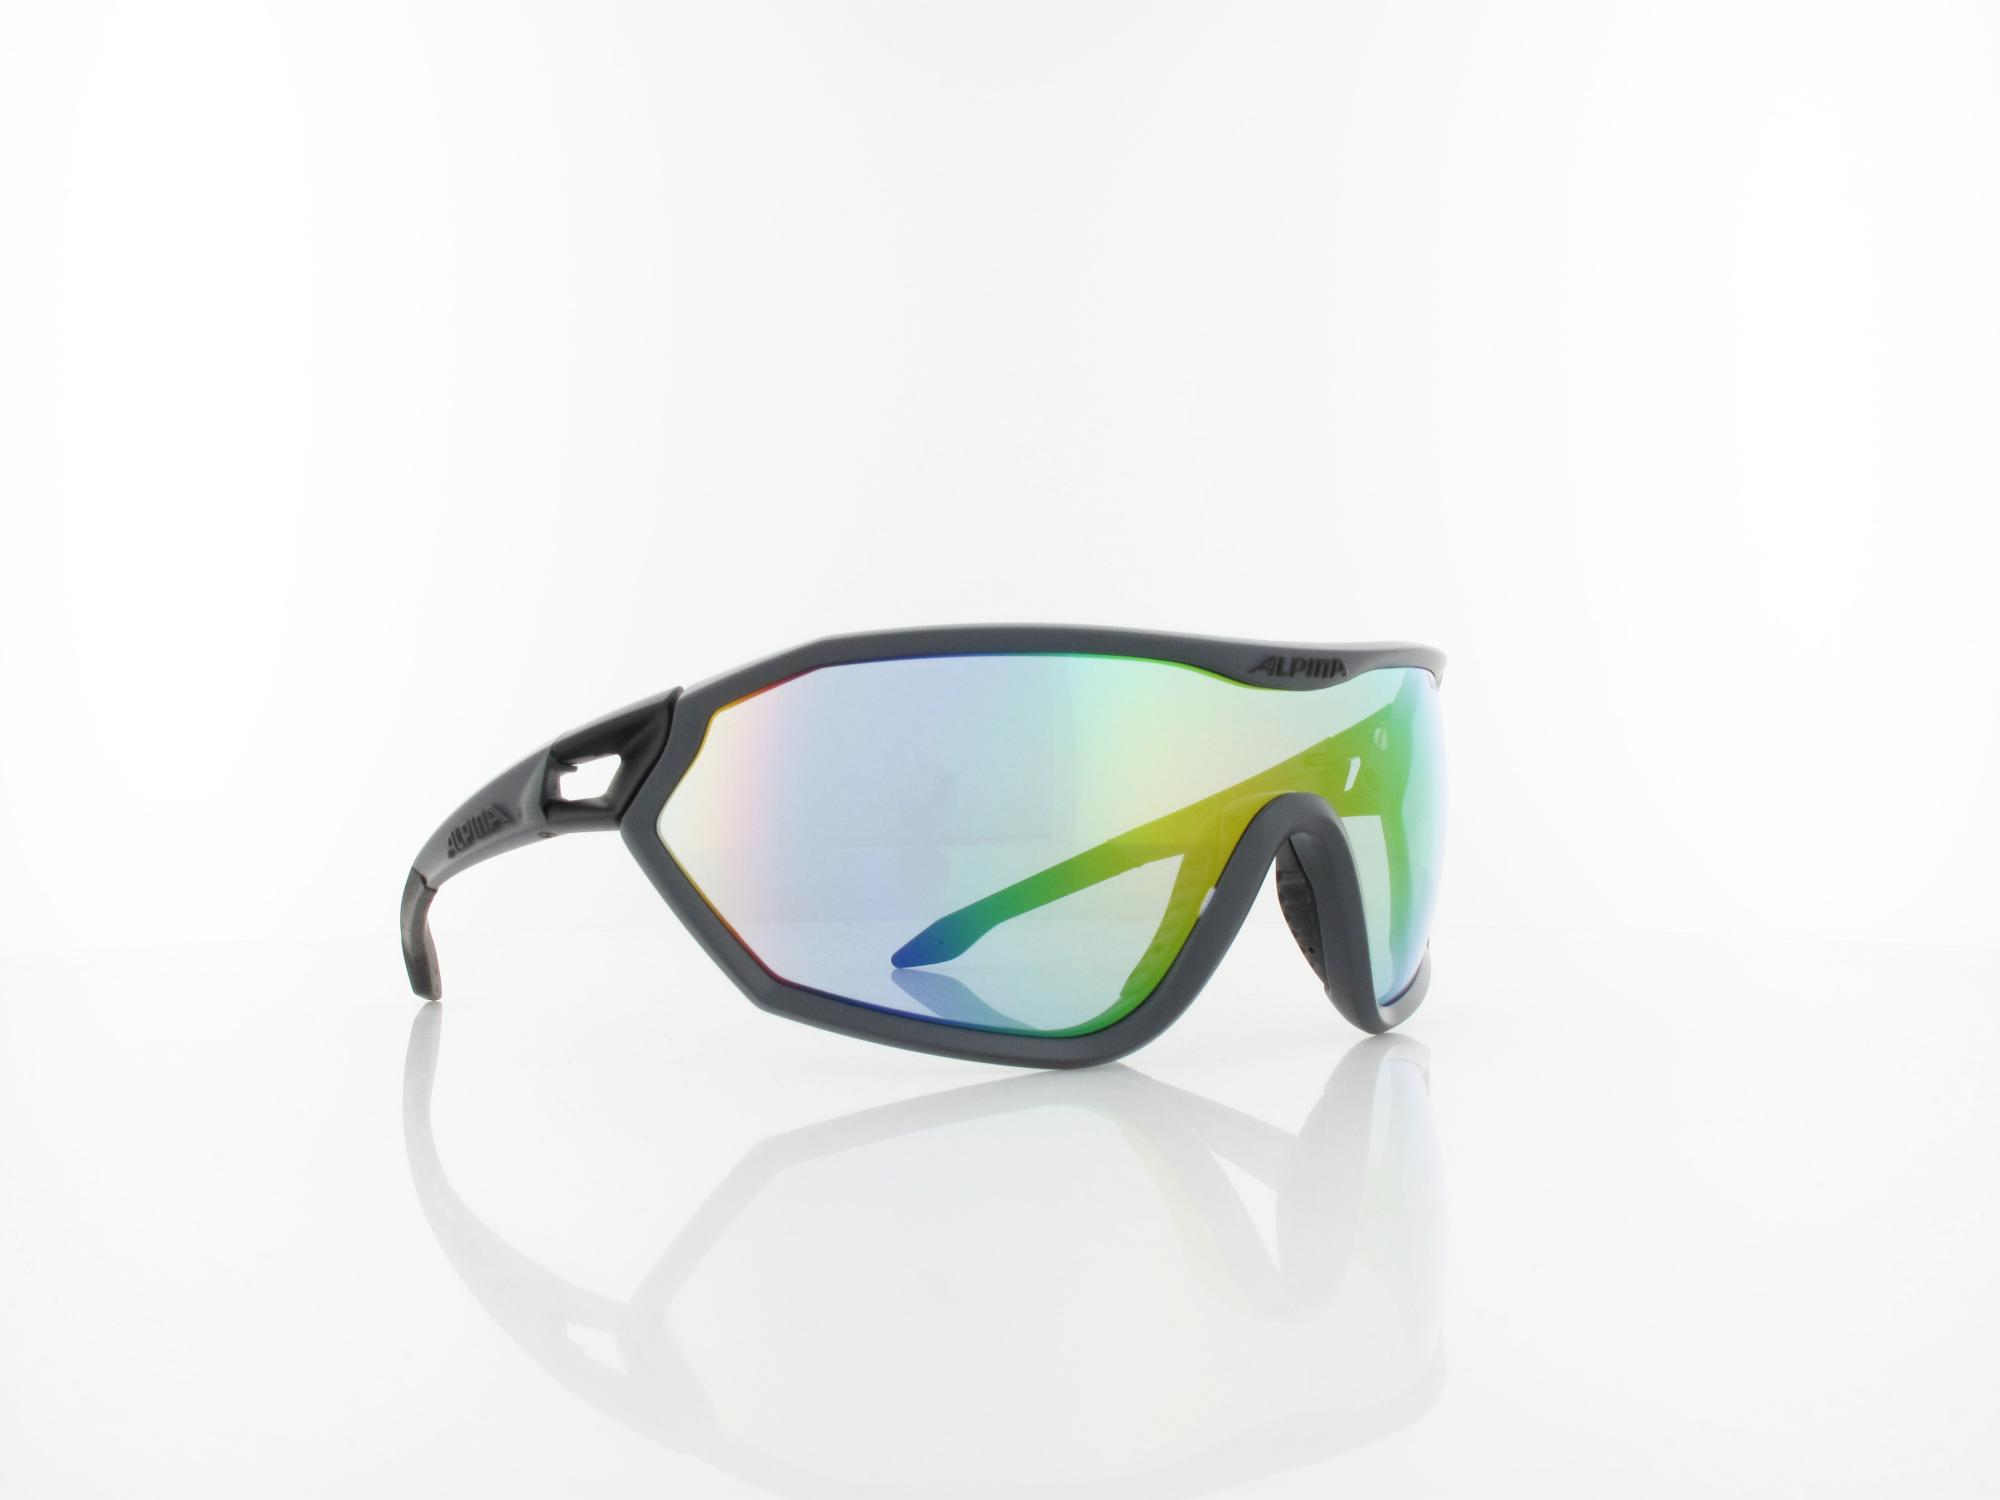 Alpina | S-WAY A8585 229 140 | coal matt black / vlm+ rainbow